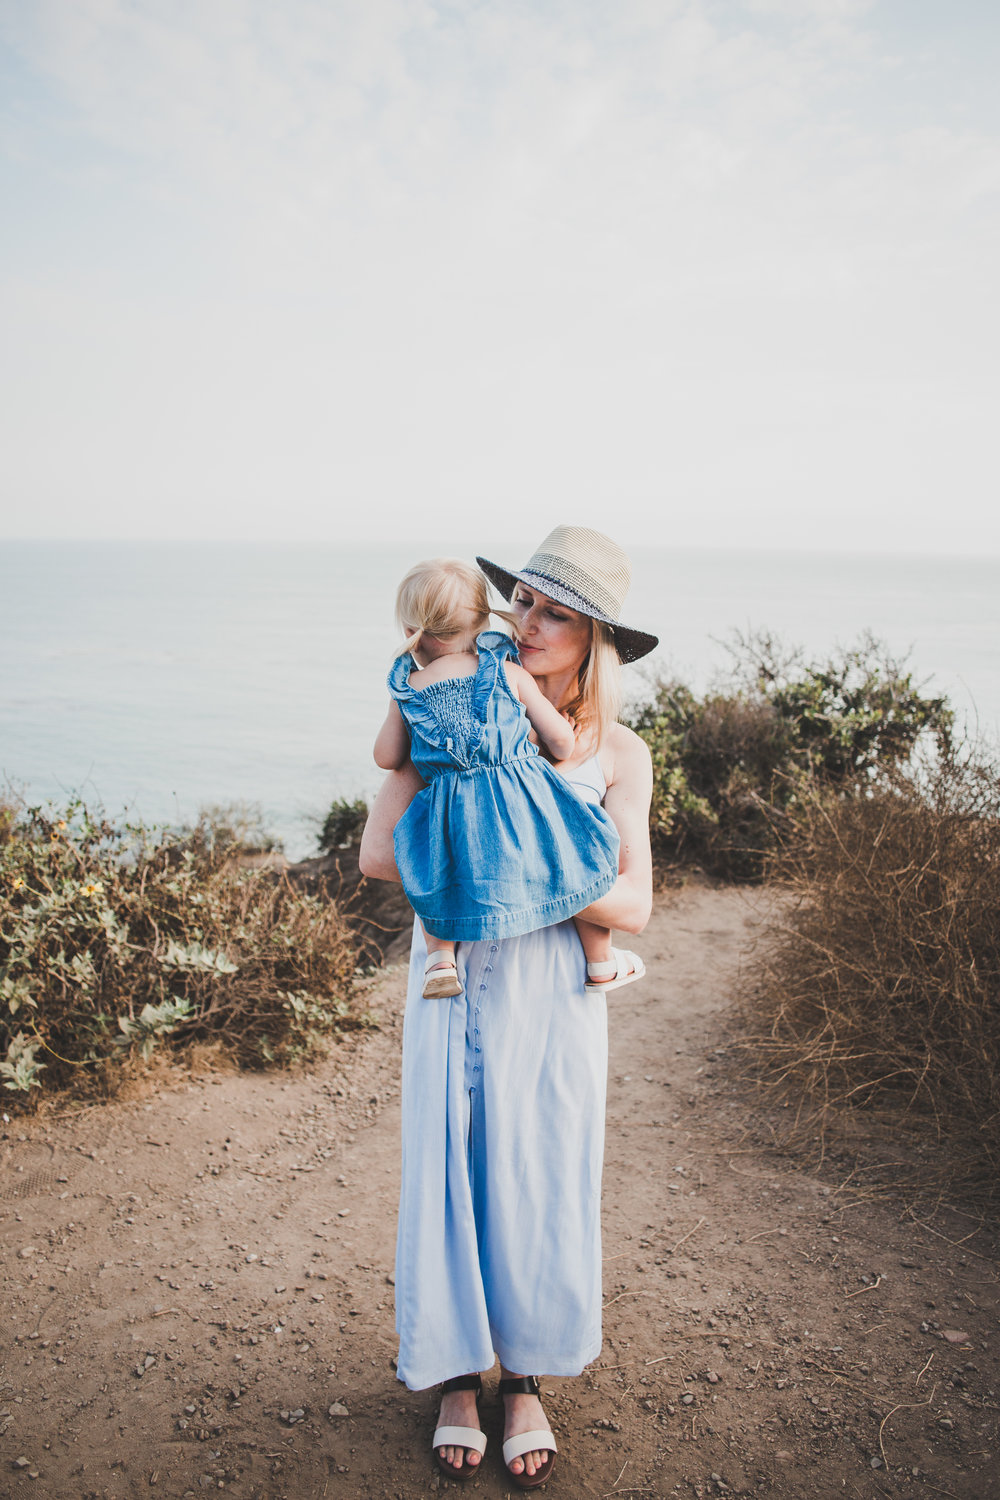 Affordable Family Summer Fashion - Marks & Spencer - Family Beach Photos - Briana Lindsey Photography